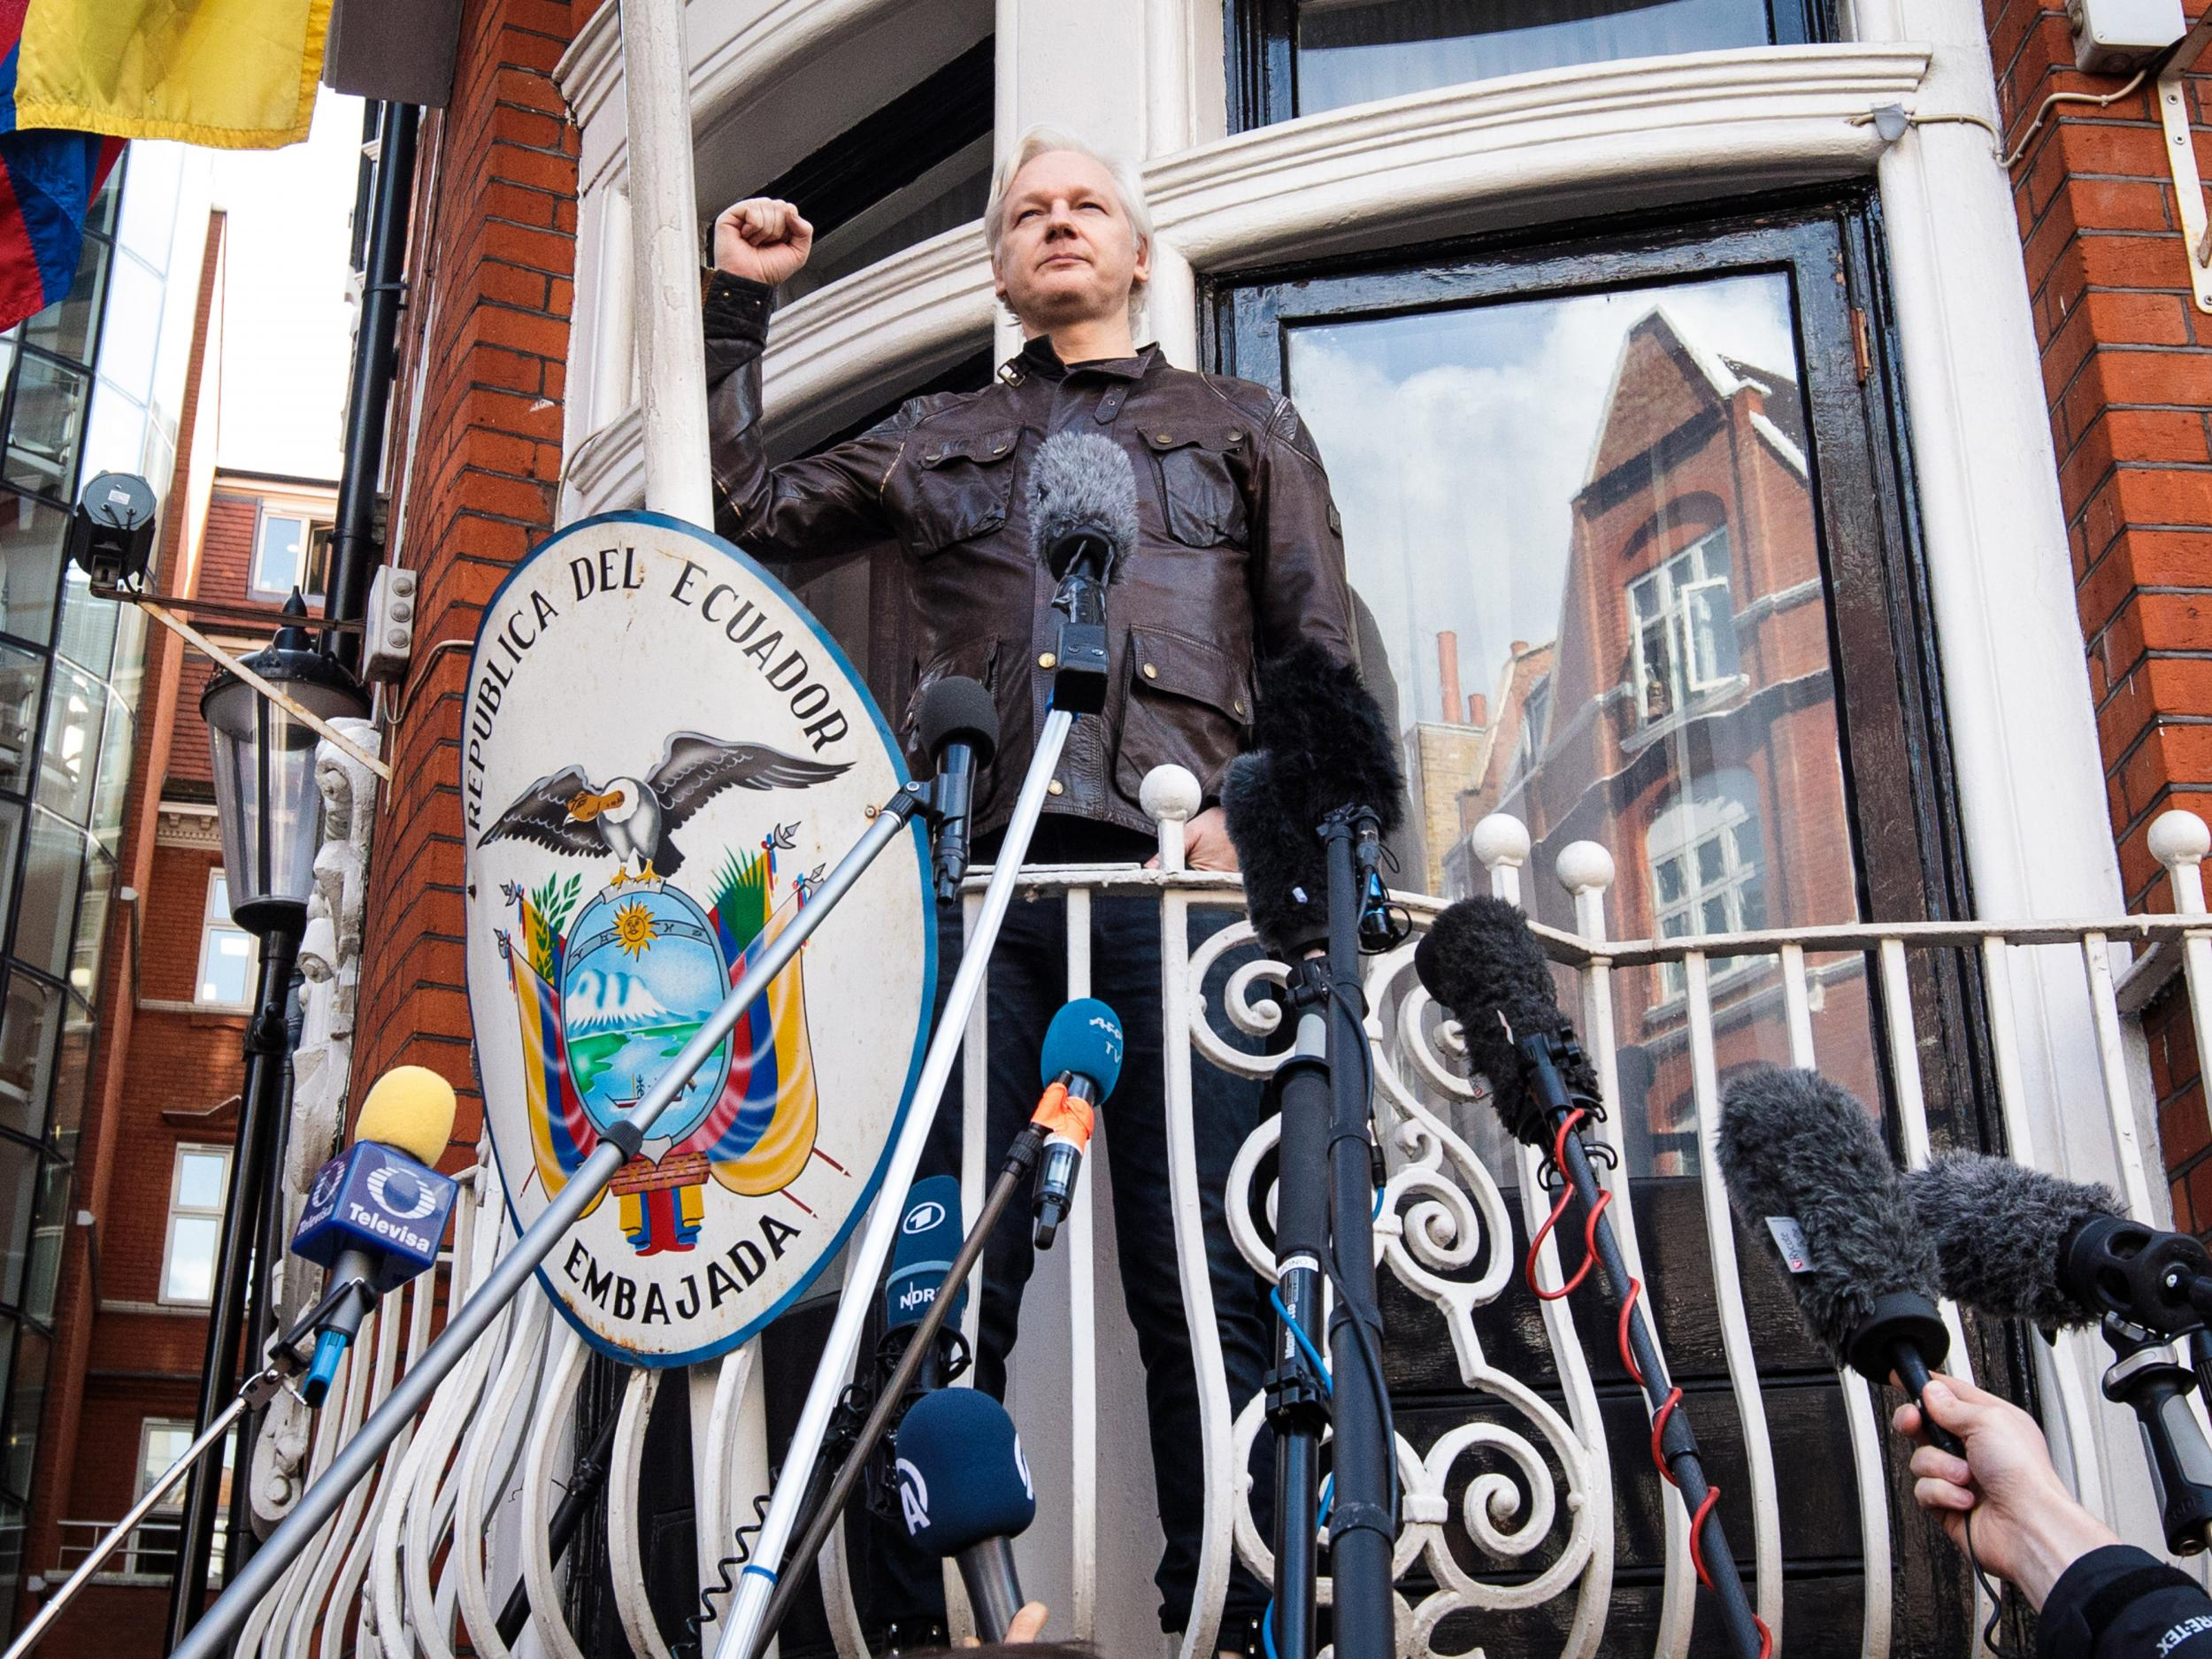 Julian Assange could walk free today after more than five years in Ecuadorian embassy